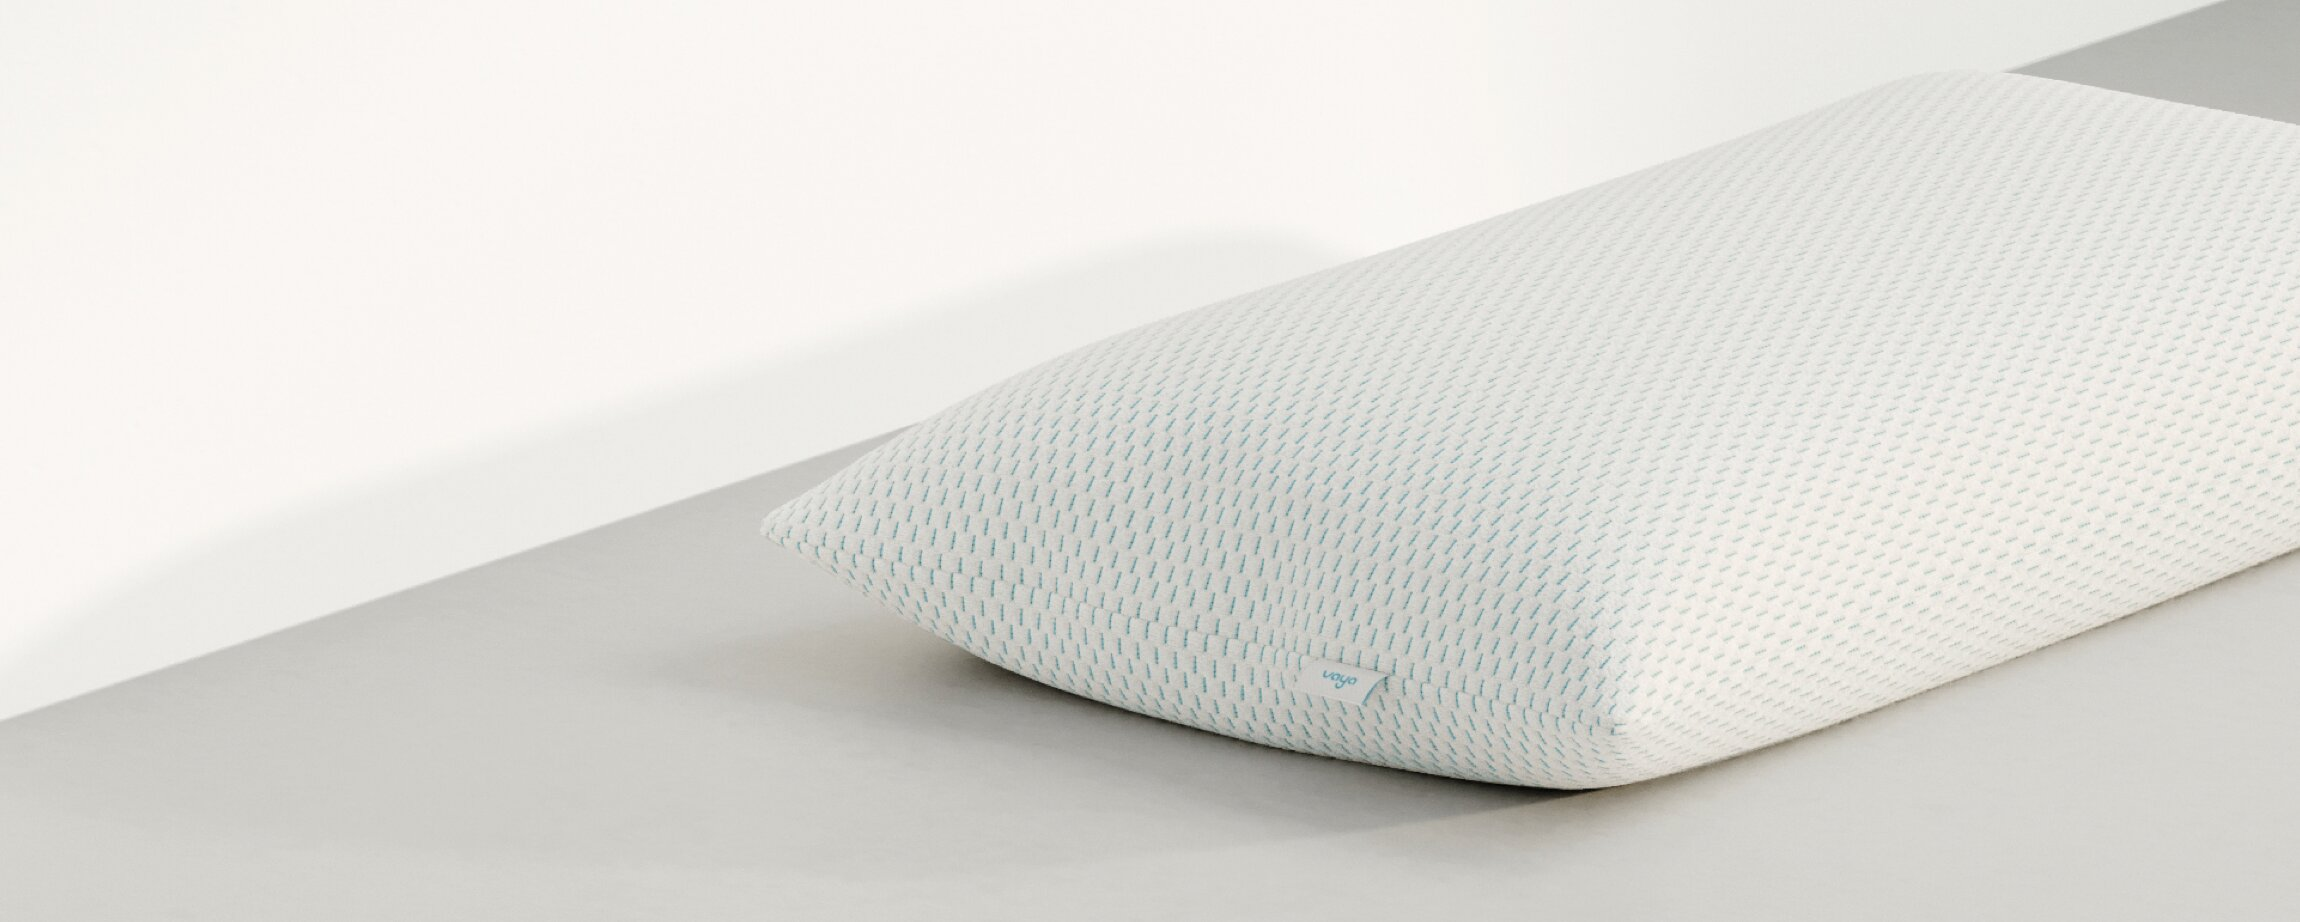 Vaya pillow side over-view